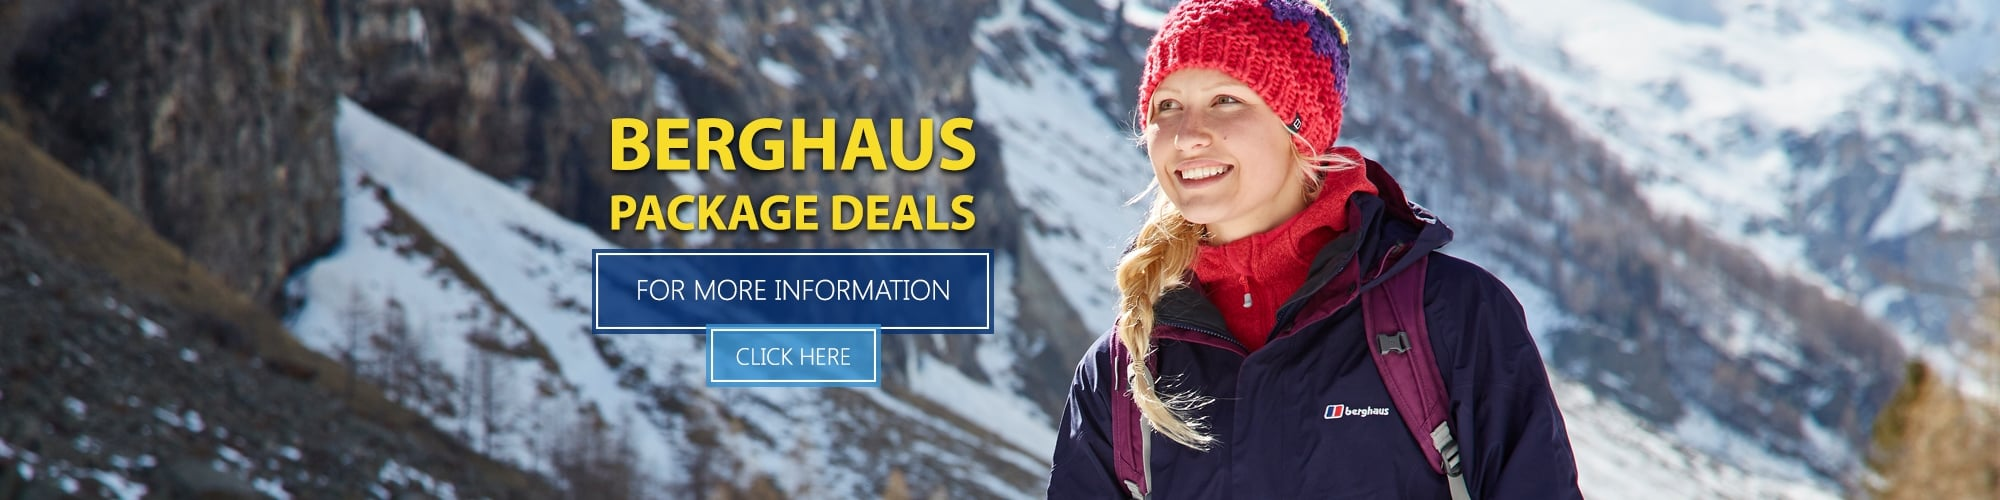 Berghaus Package Deals